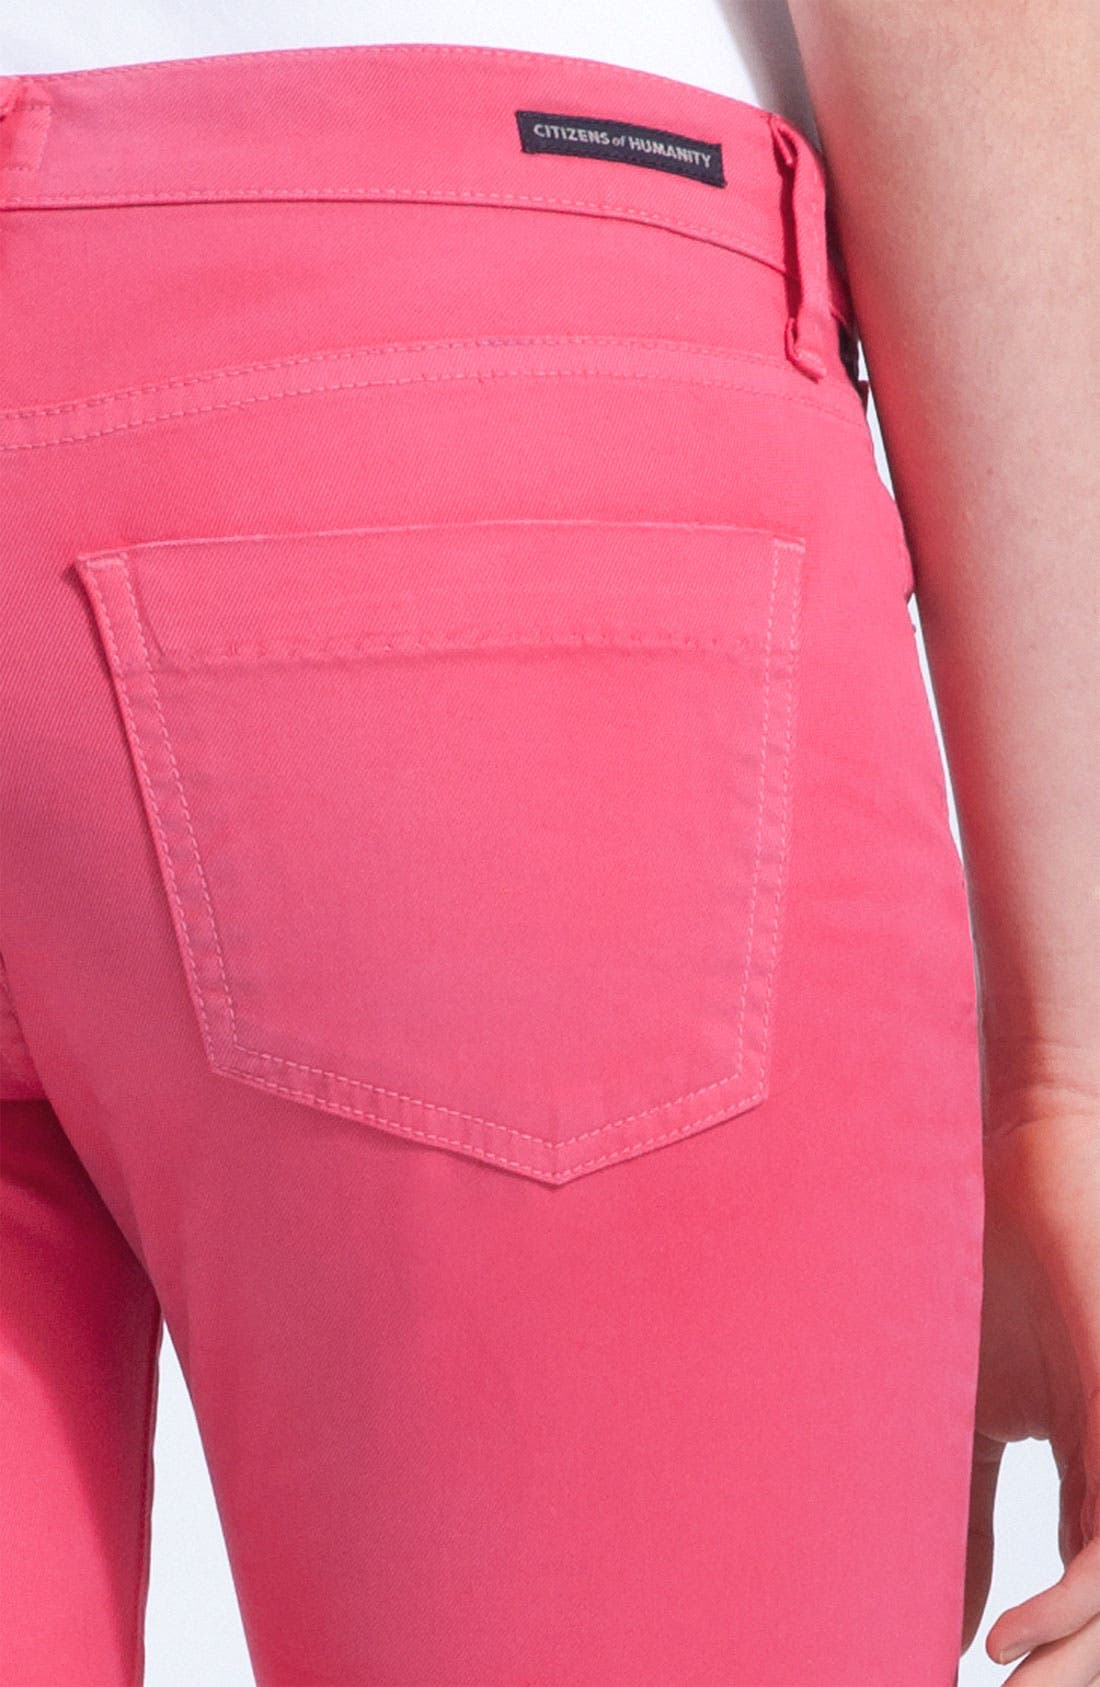 Alternate Image 3  - Citizens of Humanity 'Dani' Colored Denim Skinny Leg Crop Jeans (Shocking Pink)